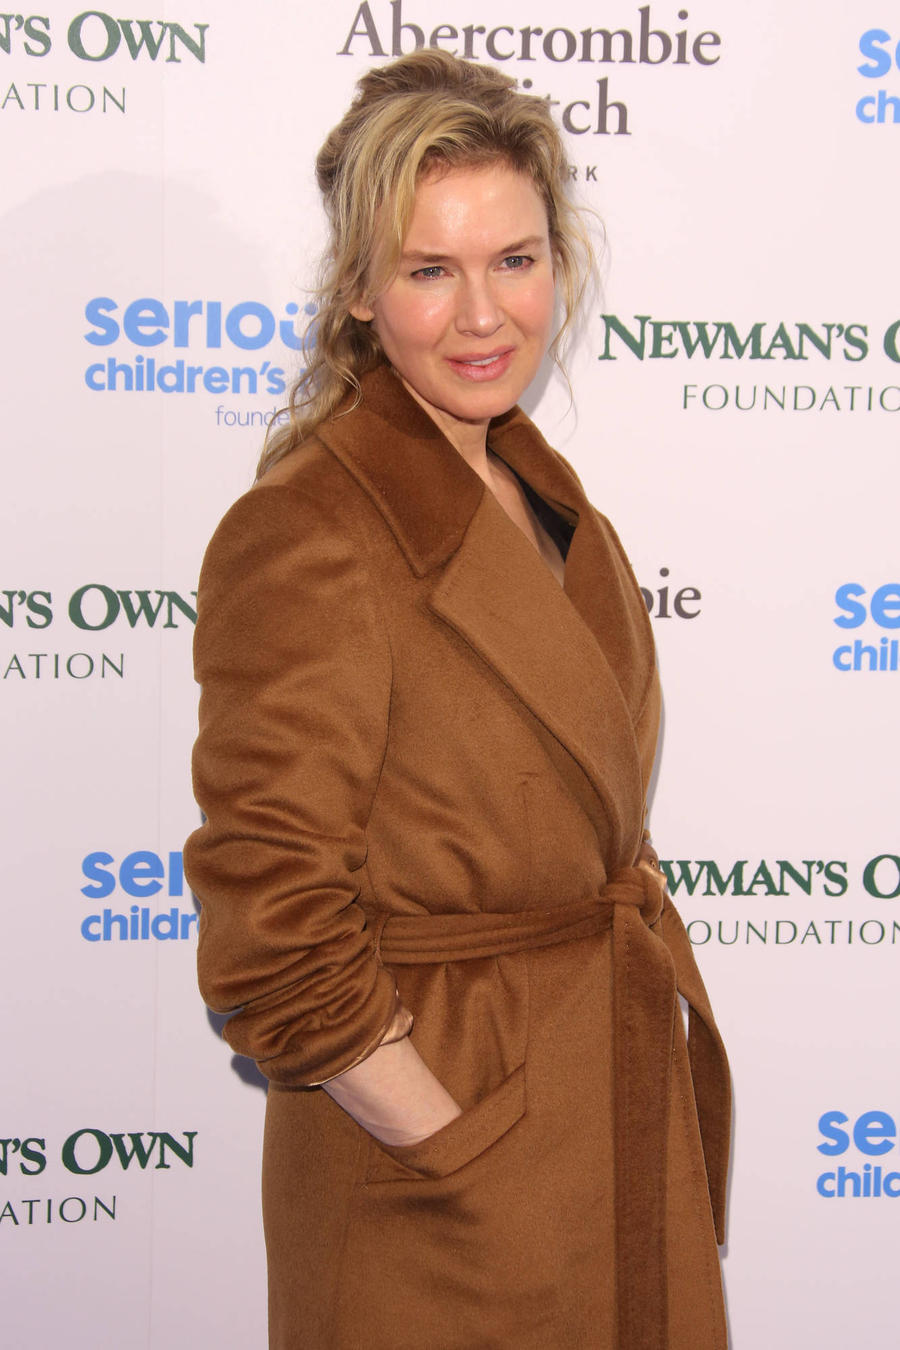 Renee Zellweger: 'New Face Drama Was Sparked By Friend's Als Diagnosis'